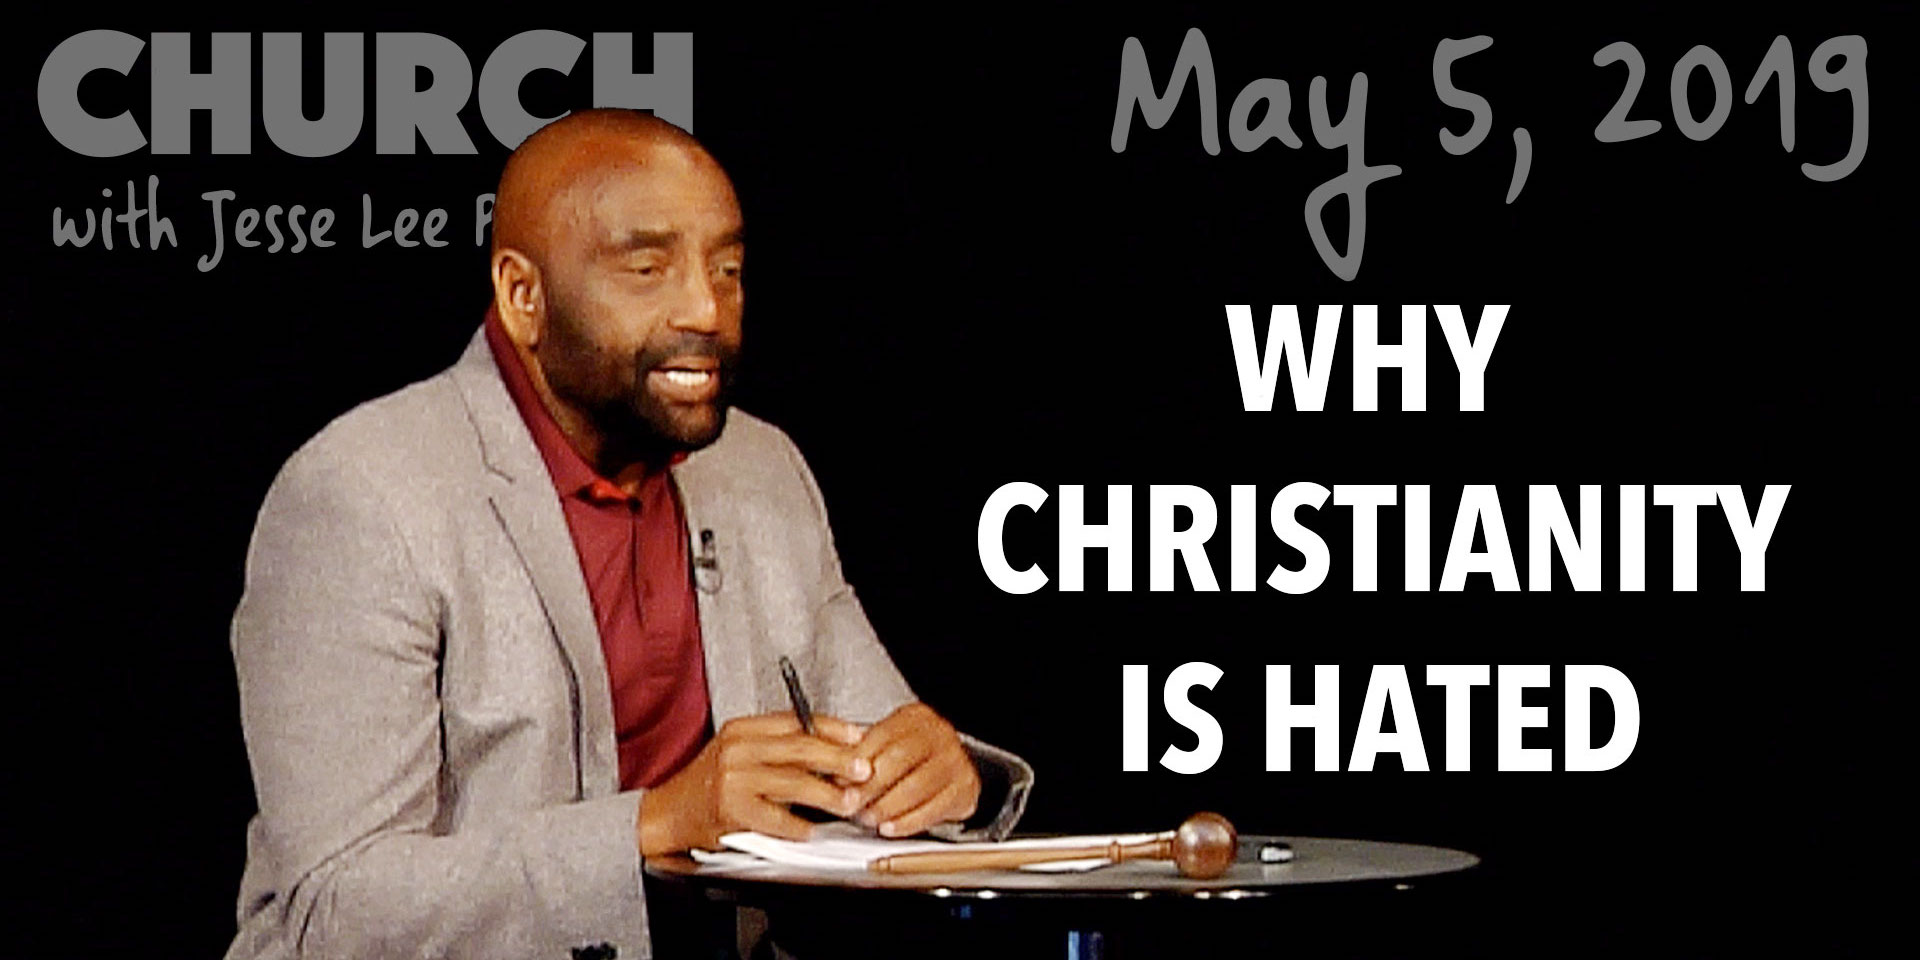 Why Christianity Is Hated (Church, May 5, 2019)